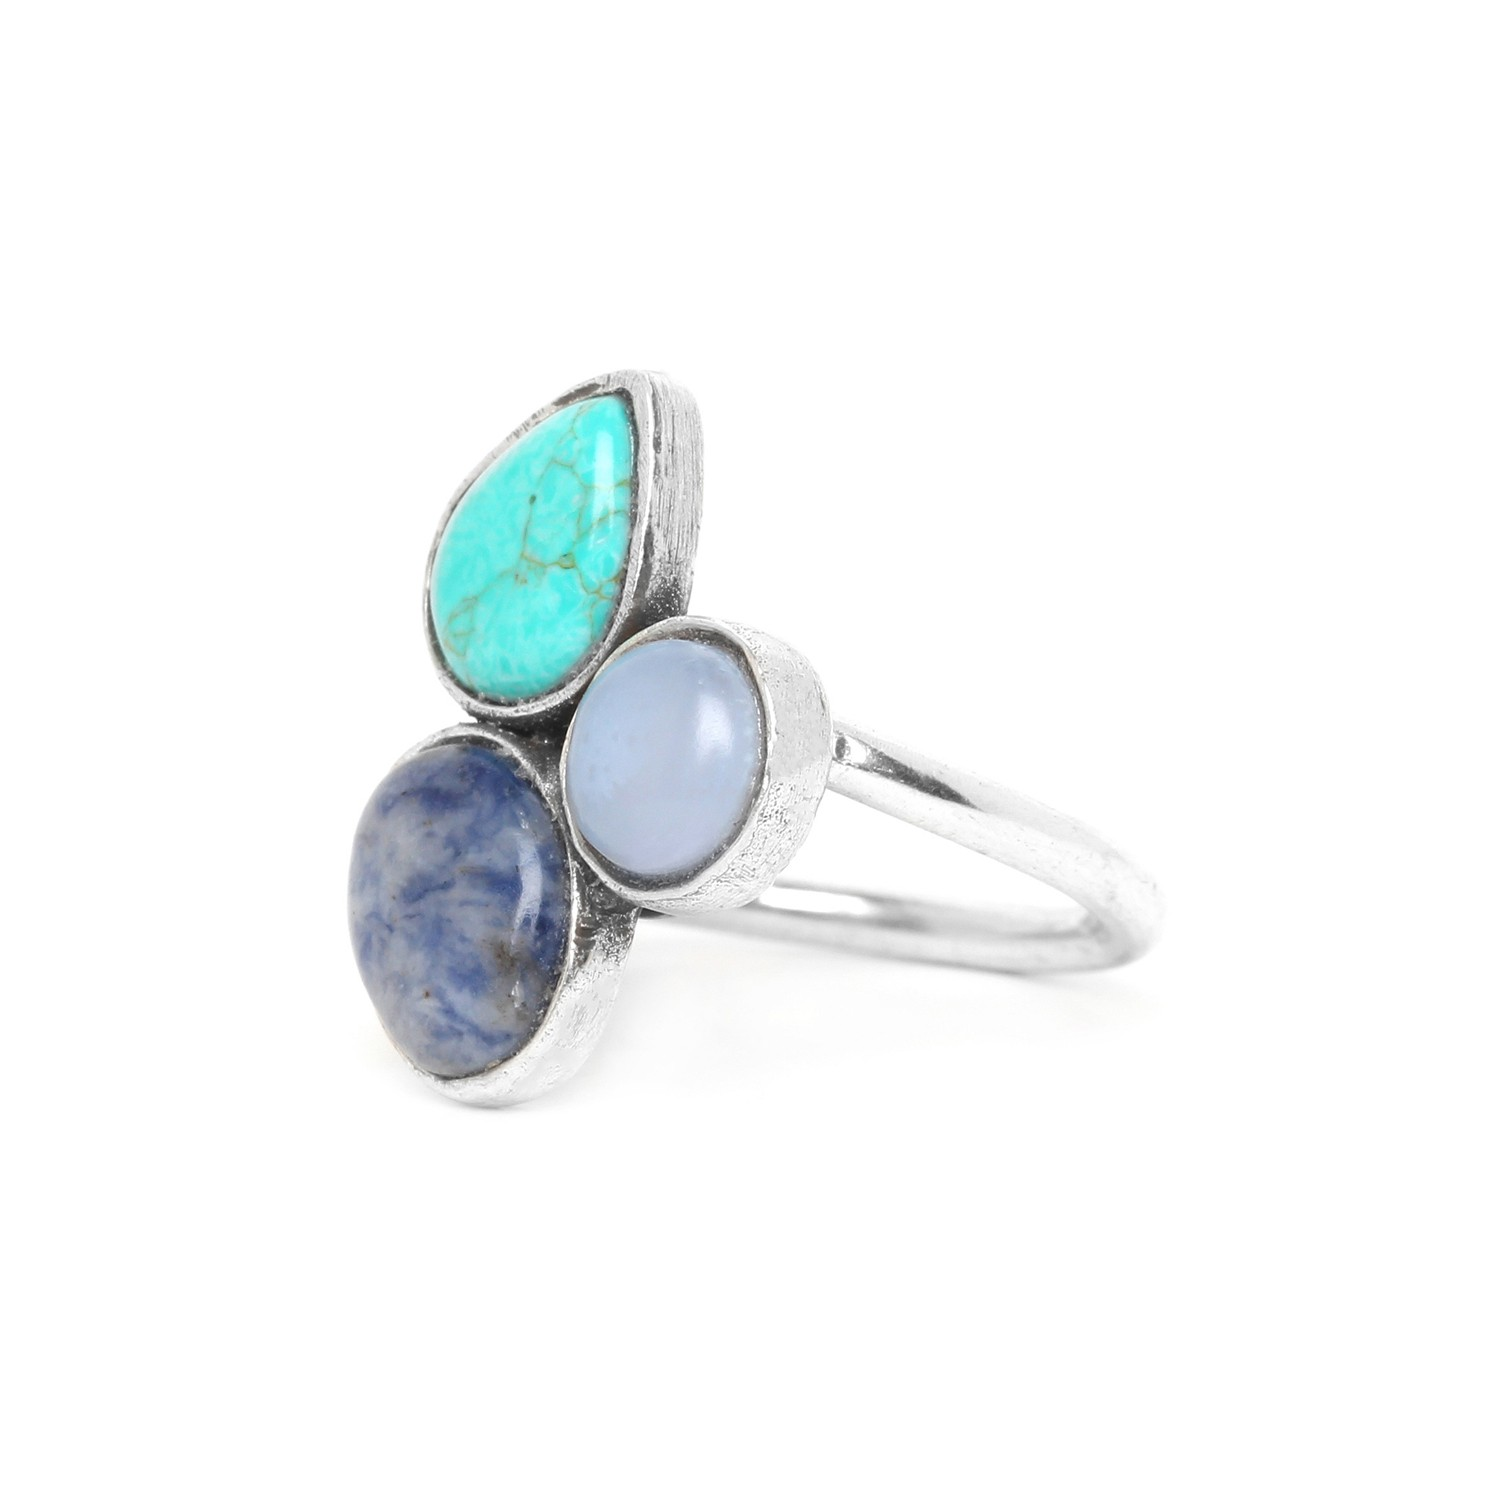 BLUE STONES 3 cabochons ring